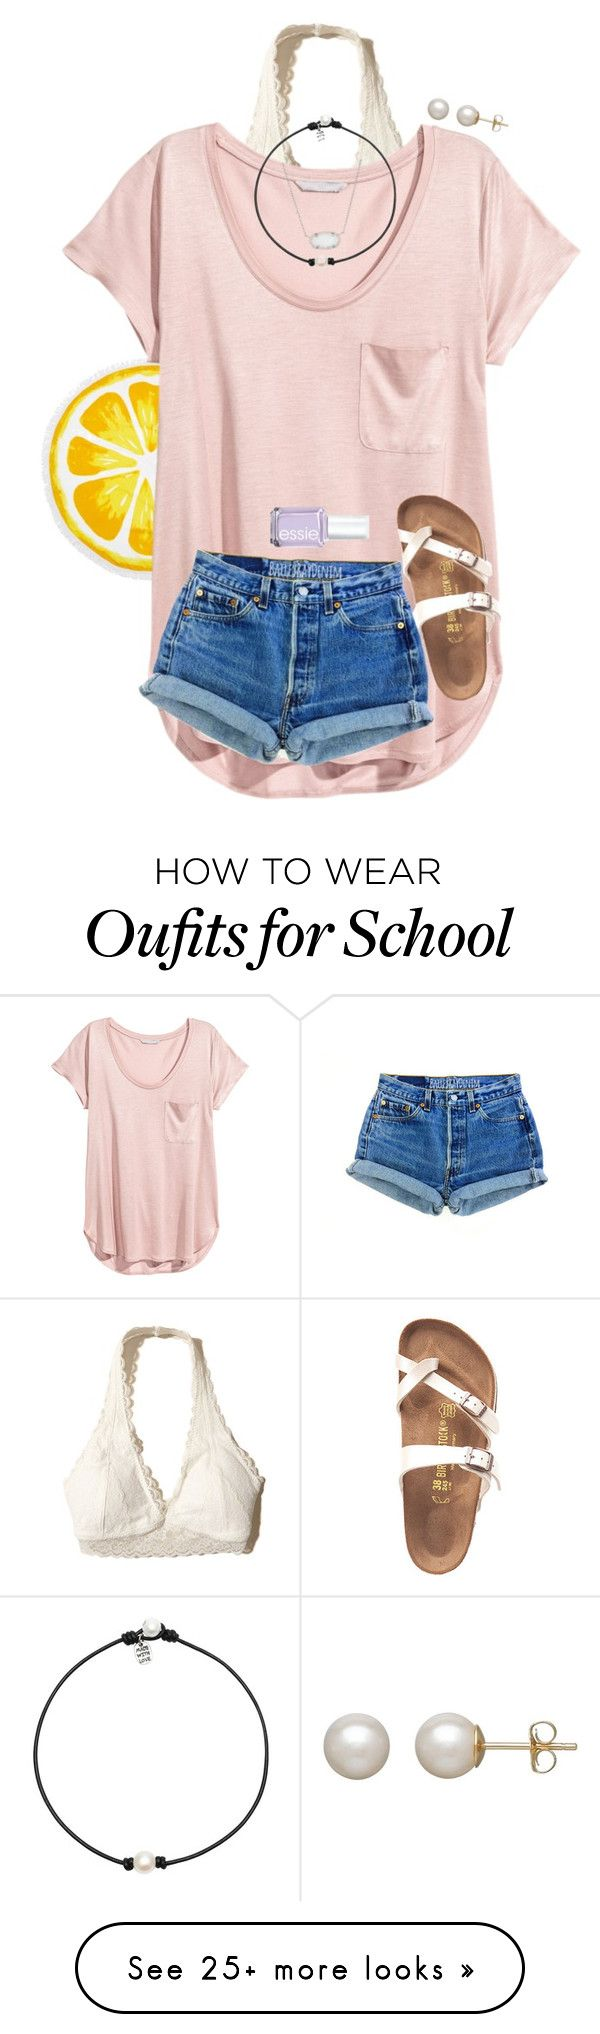 """w my babesss "" by preppy-renee on Polyvore featuring Nordstrom Rack, Hollister Co., H&M, Birkenstock, Kendra Scott, Honora and Essie"